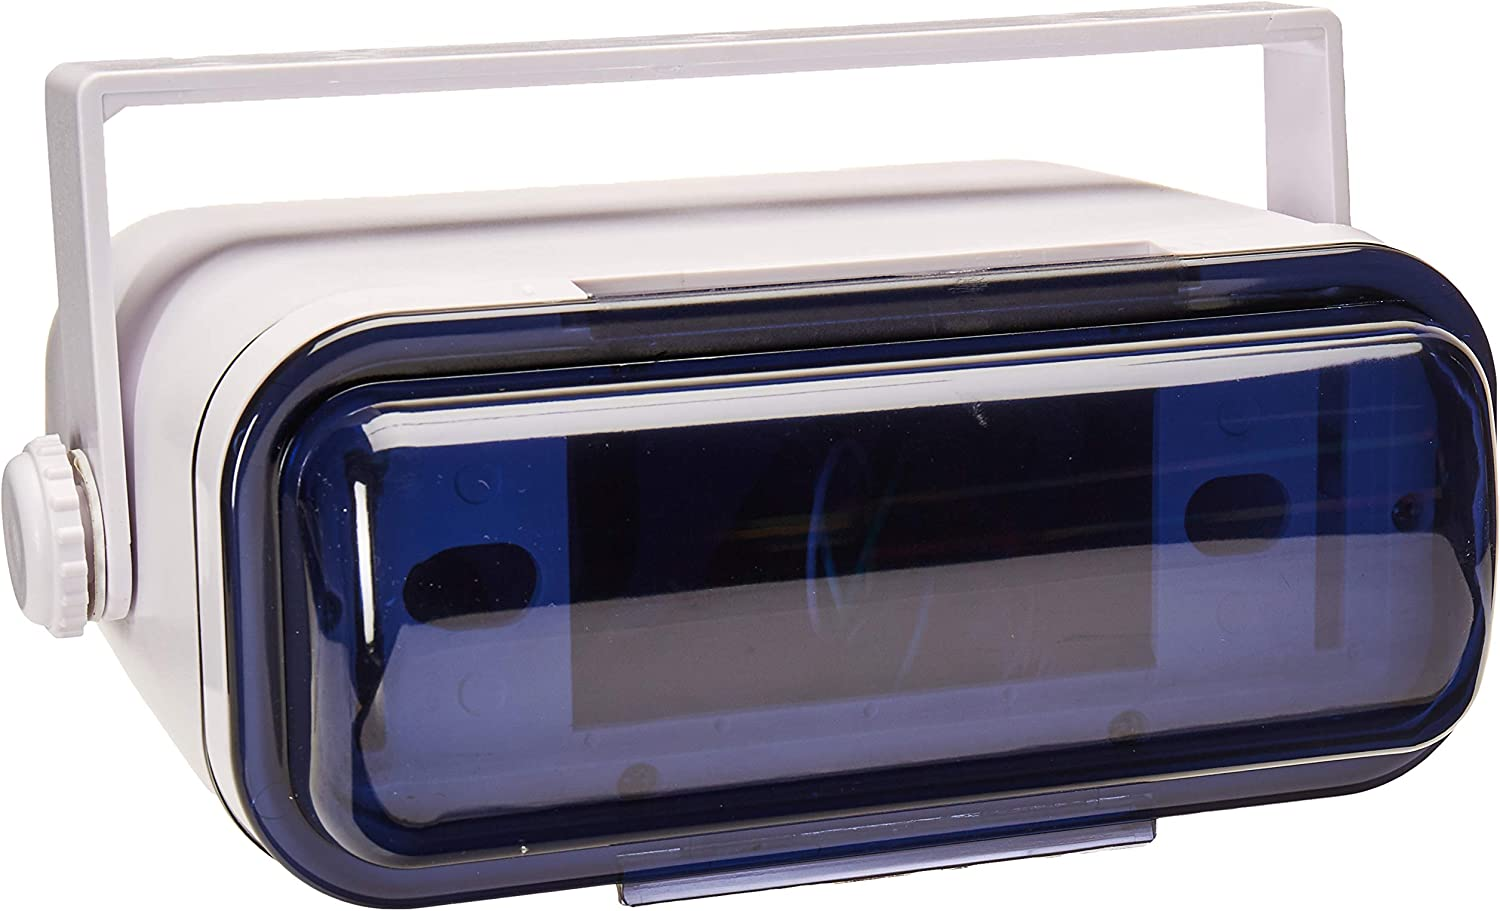 Water Resistant Boat Radio Protector Shield with Flip-up Door /& Neoprene Gasket Pyle PLMRCW3 Compatible with Dual Shaft /& DIN Style Stereos Durable Universal Marine Stereo Cover